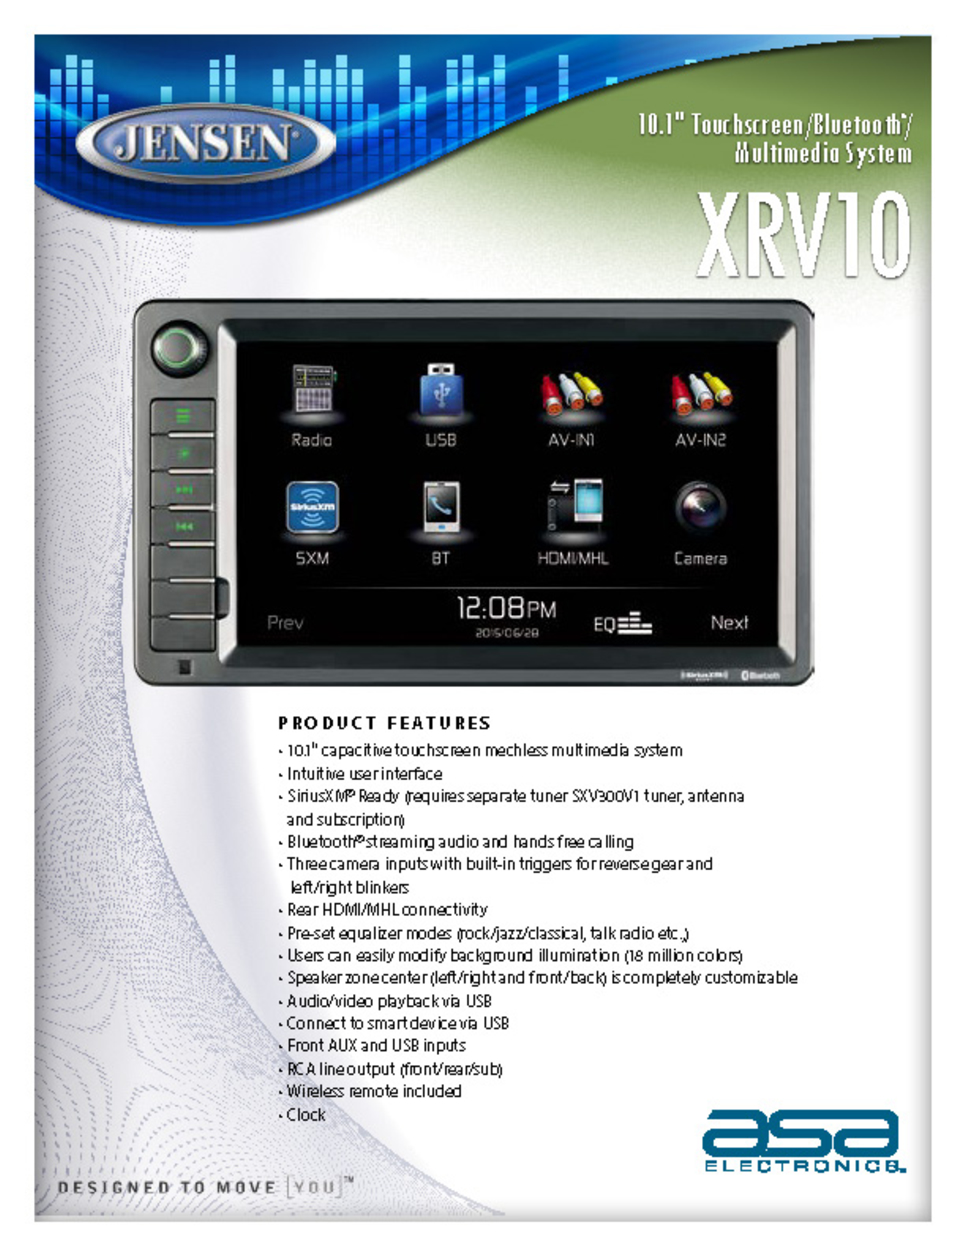 iPod Jensen XRV10 Double DIN 10.1 Touchscreen Bluetooth Multimedia Receiver /& Back-Up Observation System System AV In ASA Electronics HDMI SiriusXM Ready MHL iPhone USB Built-In BT Technology